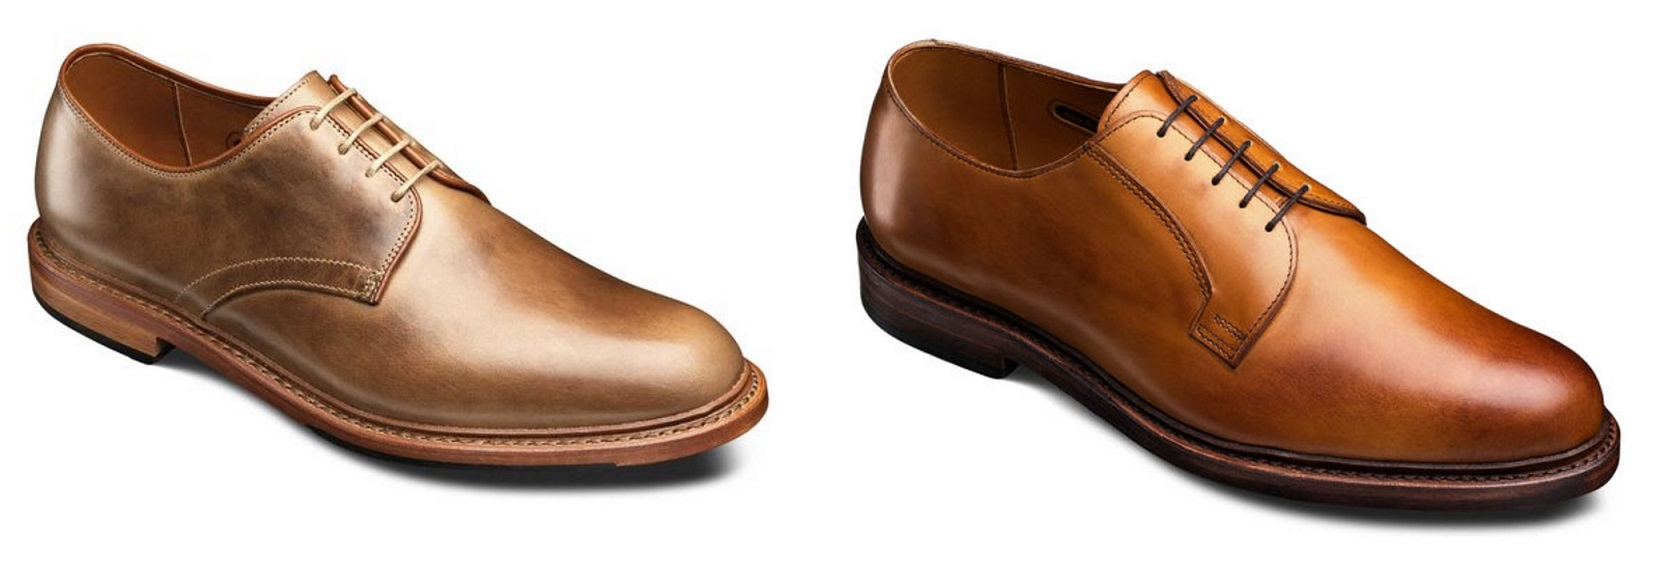 Much sleeker and less formal lines, slimmer toe, four-eyelet, etc. Add the  natural welt/edge and the leather choices and it is a whole different feel  to me ...